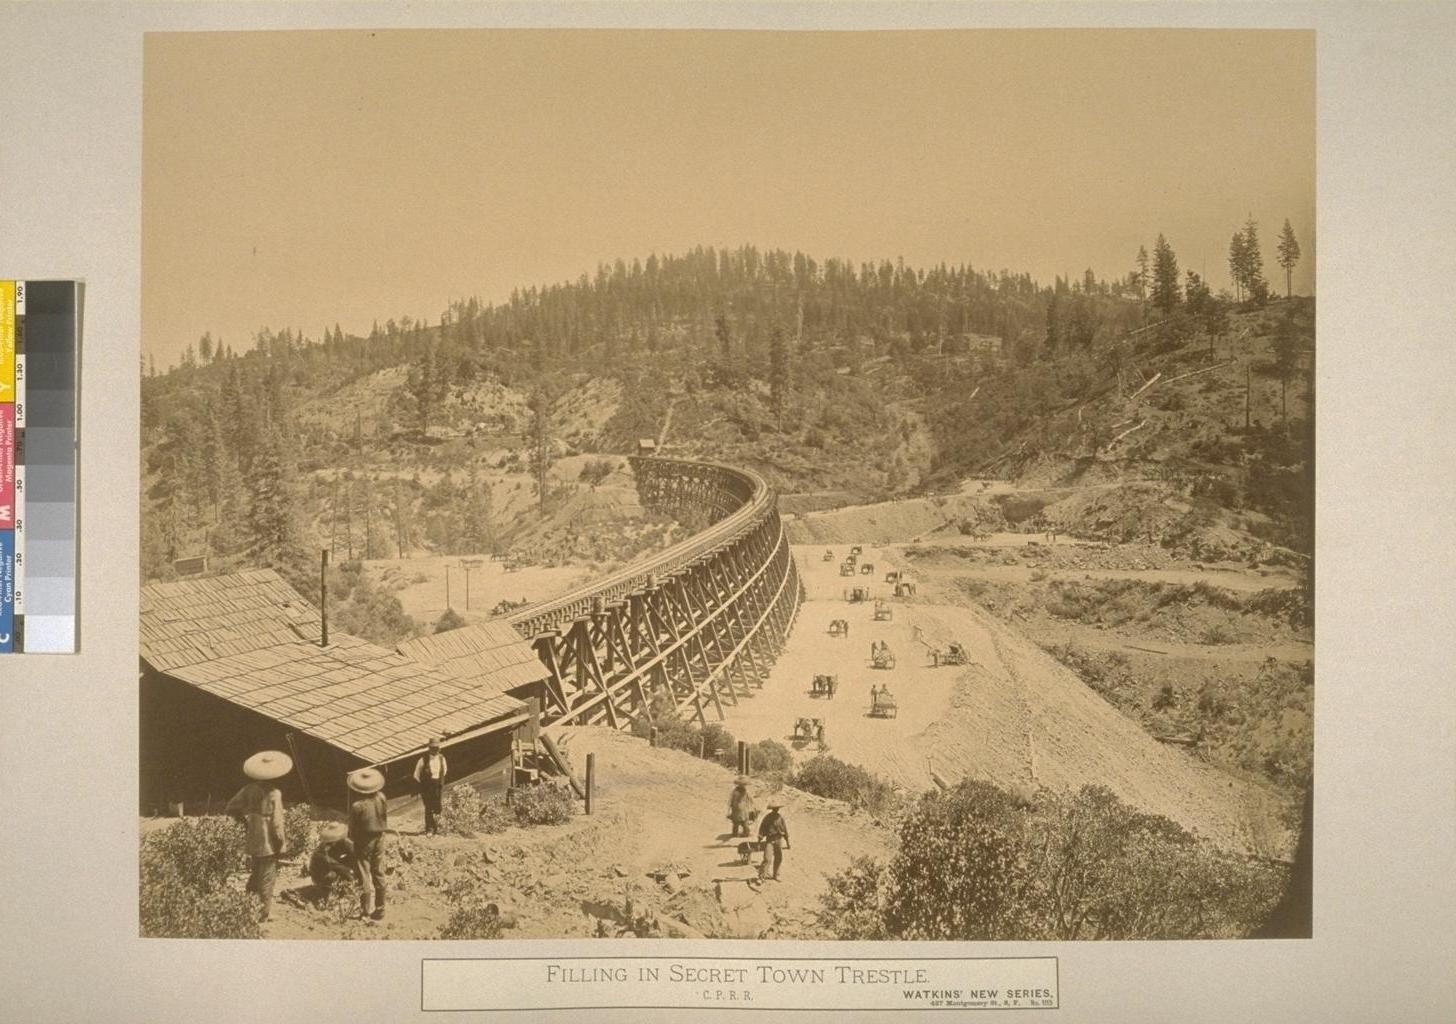 Chinese American Contribution To Transcontinental Railroad